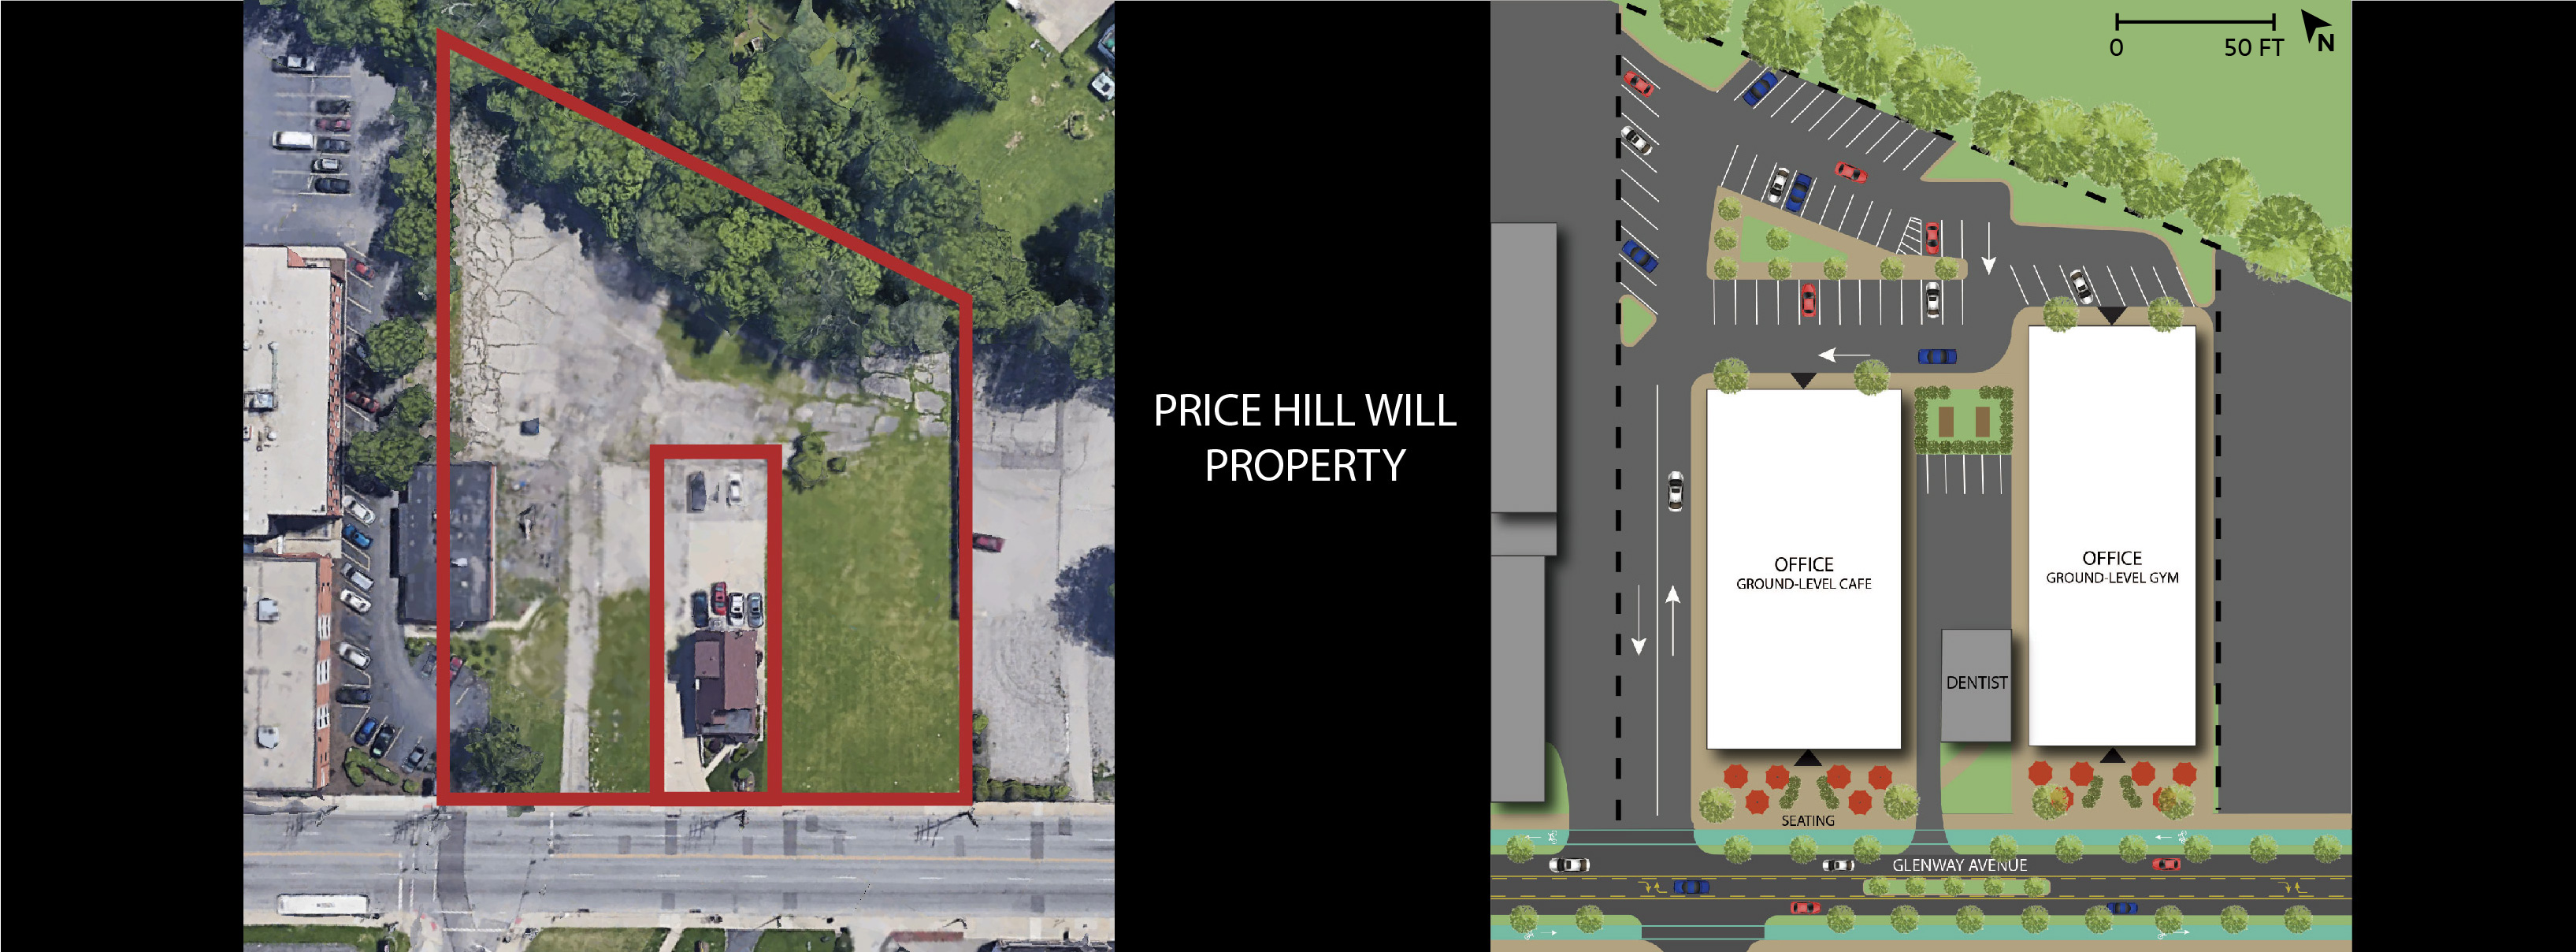 OFFICE PRICE HILL WILL PROPERTY SITE PLAN